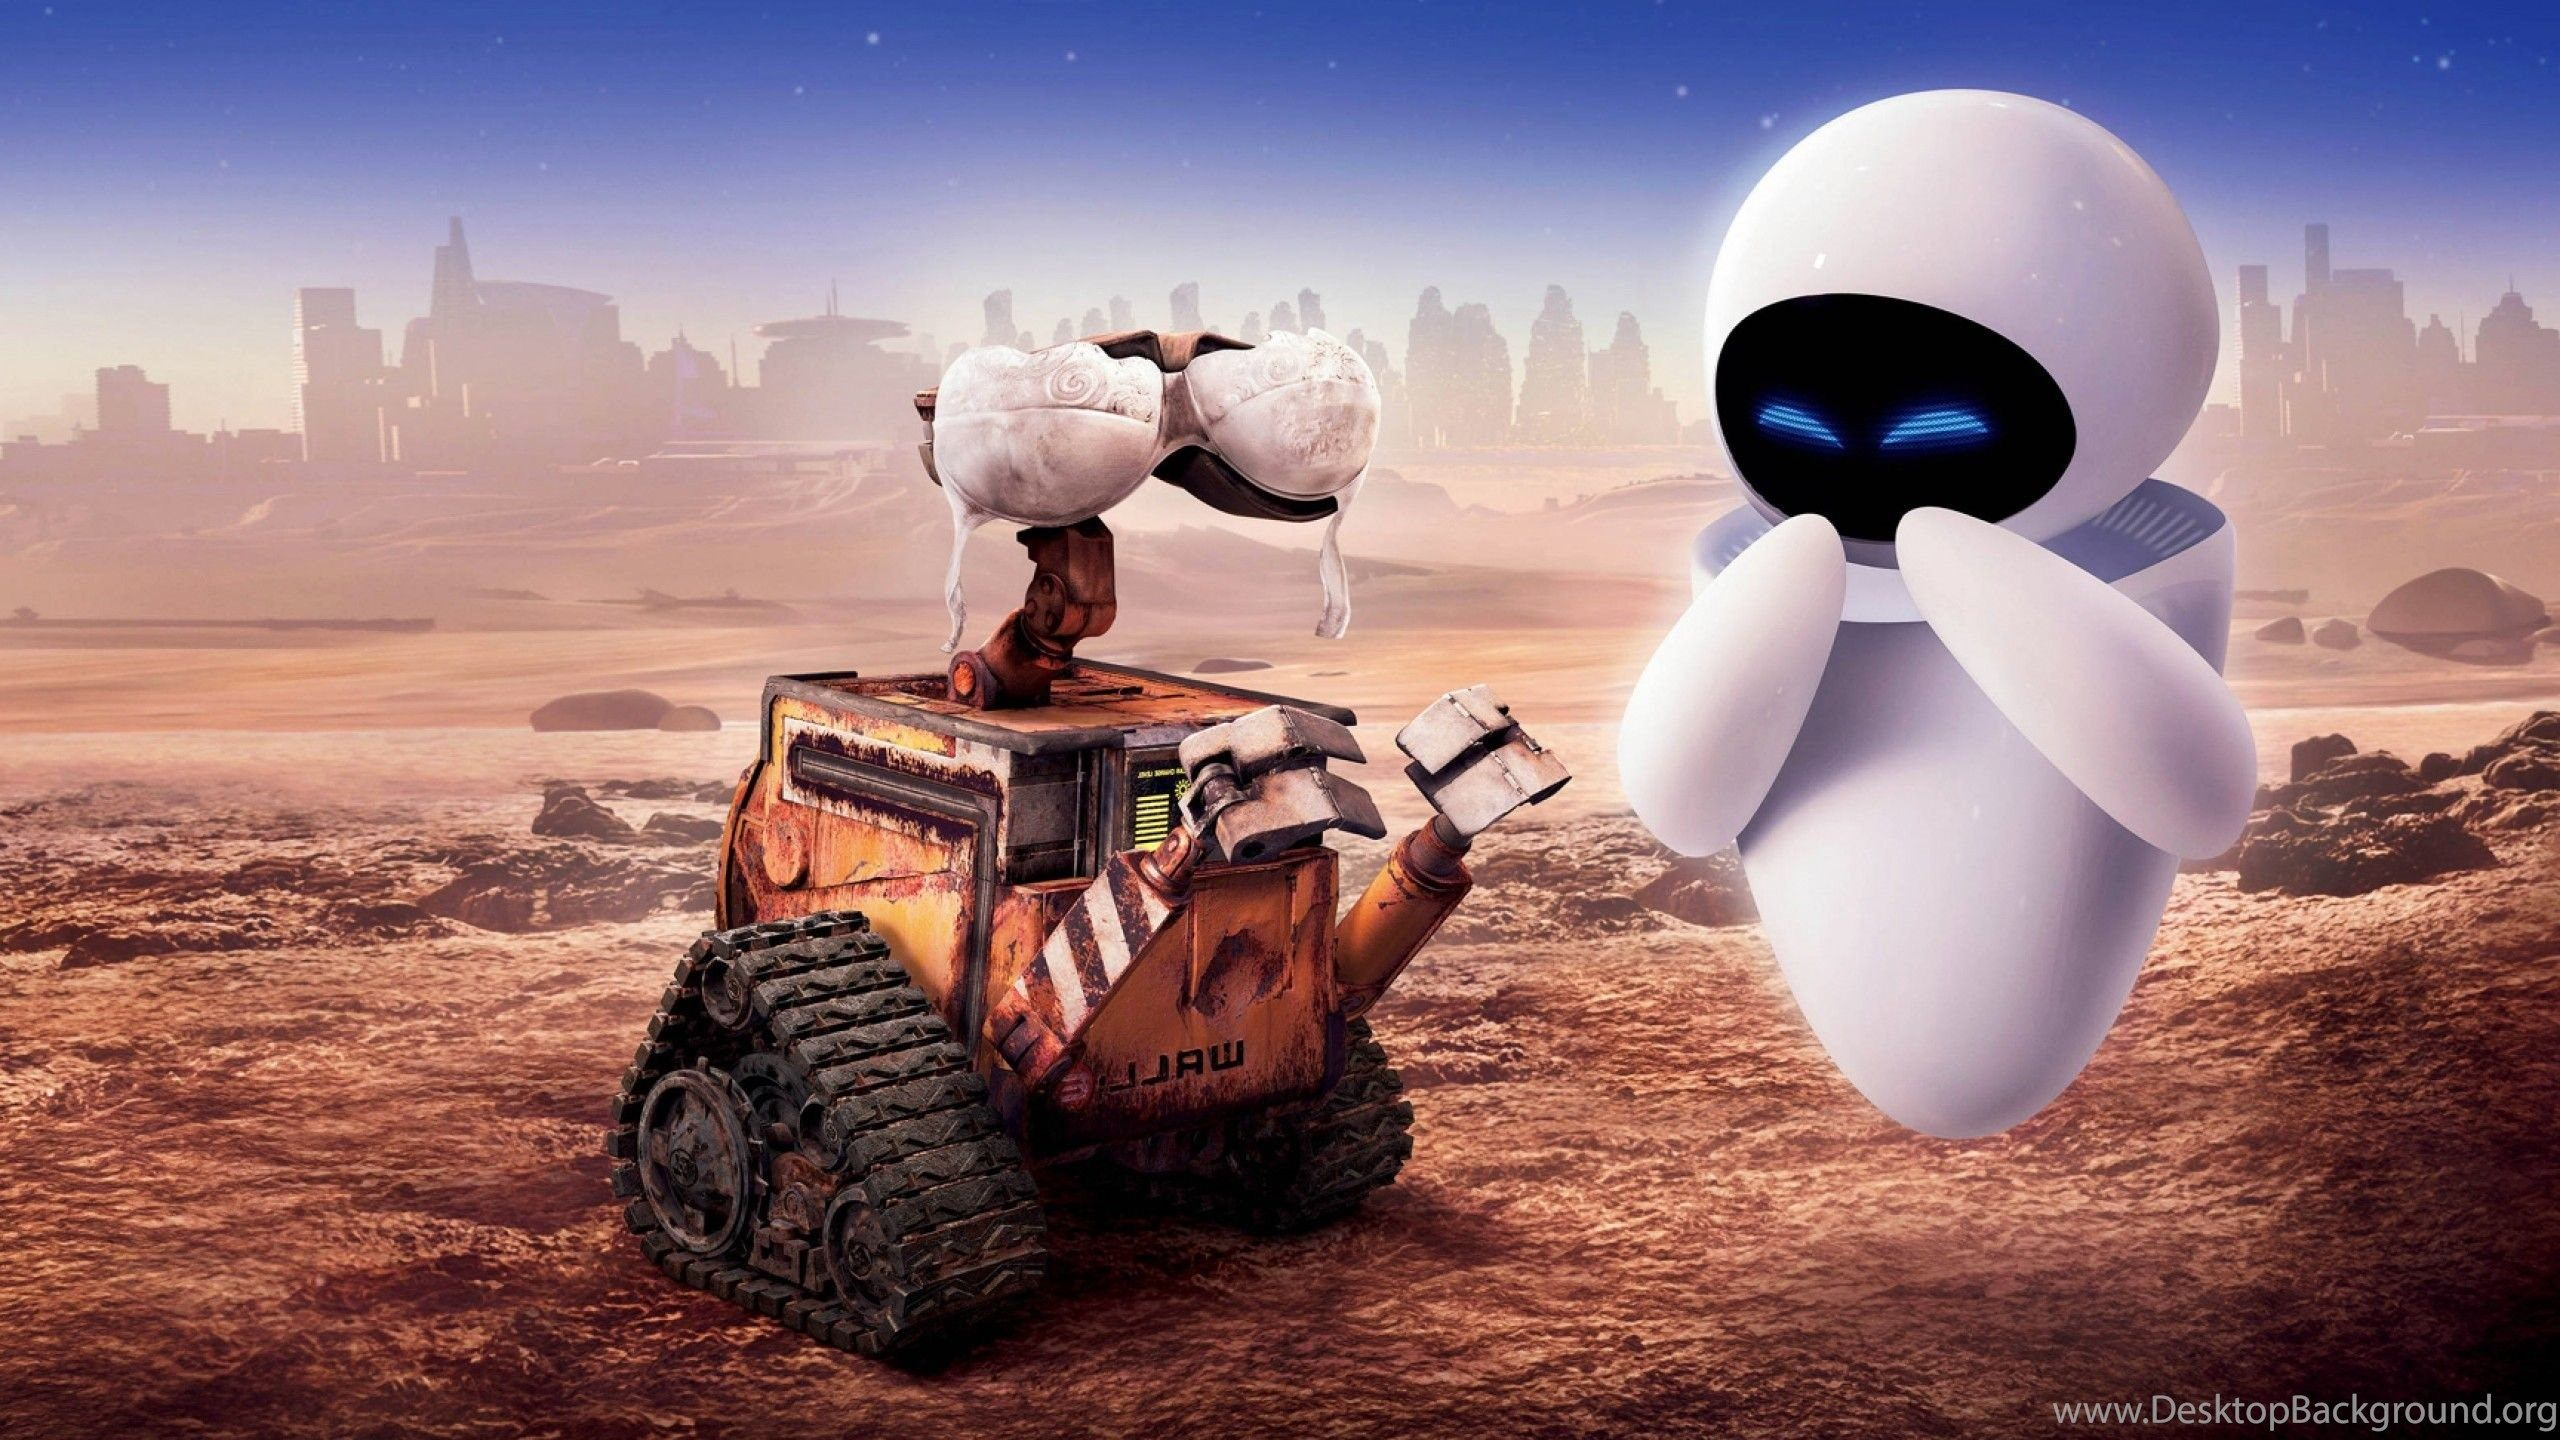 Wall E HD Wallpapers 1920x1080 (1) Fondo de escritorio